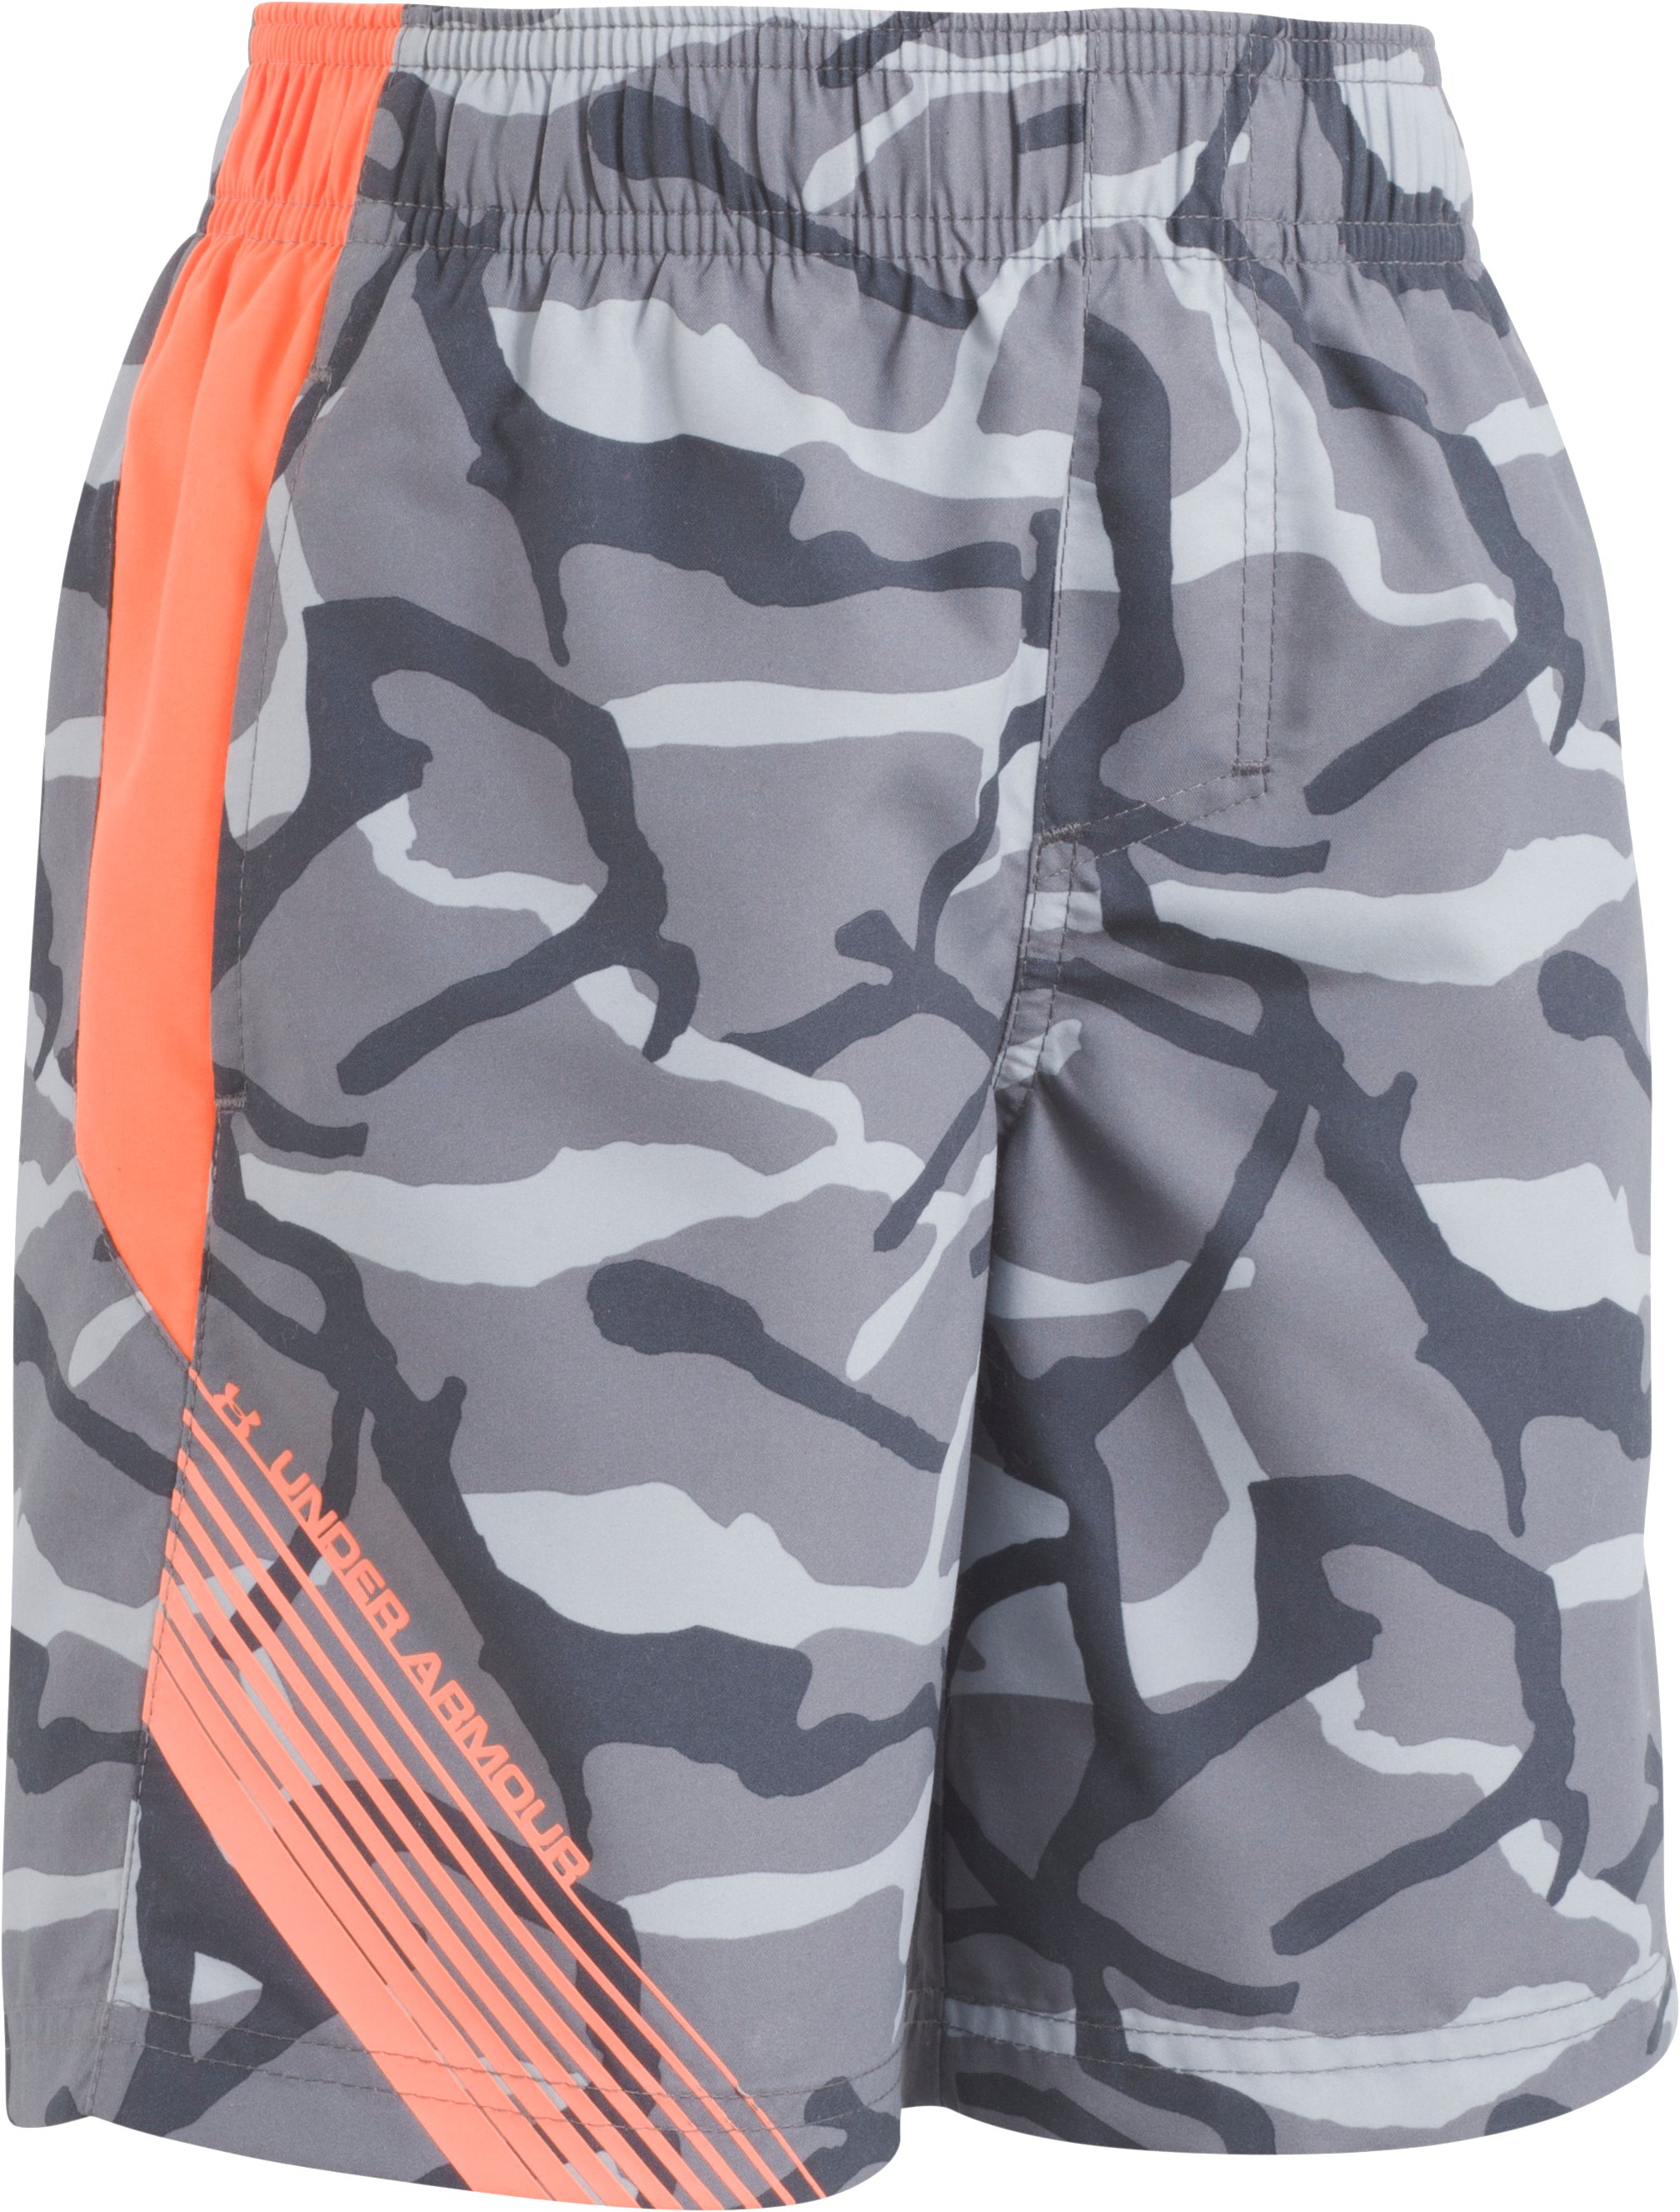 Boys' UA Anatomic Volley Shorts, Graphite